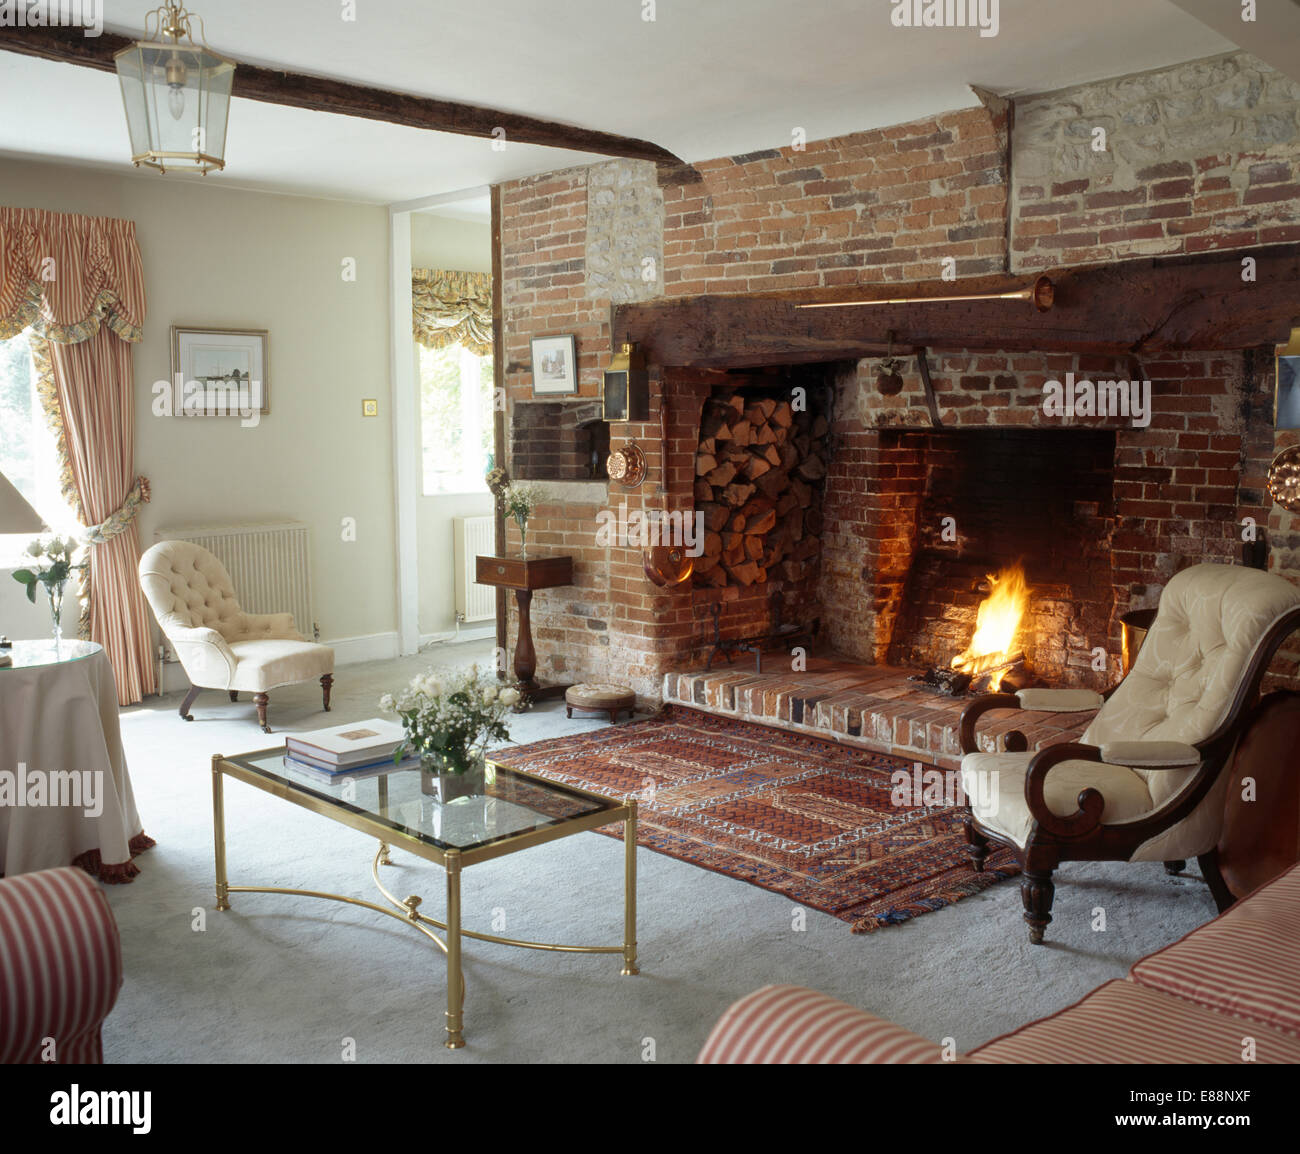 Oriental Rug In Front Of Inglenook Fireplace In Cottage